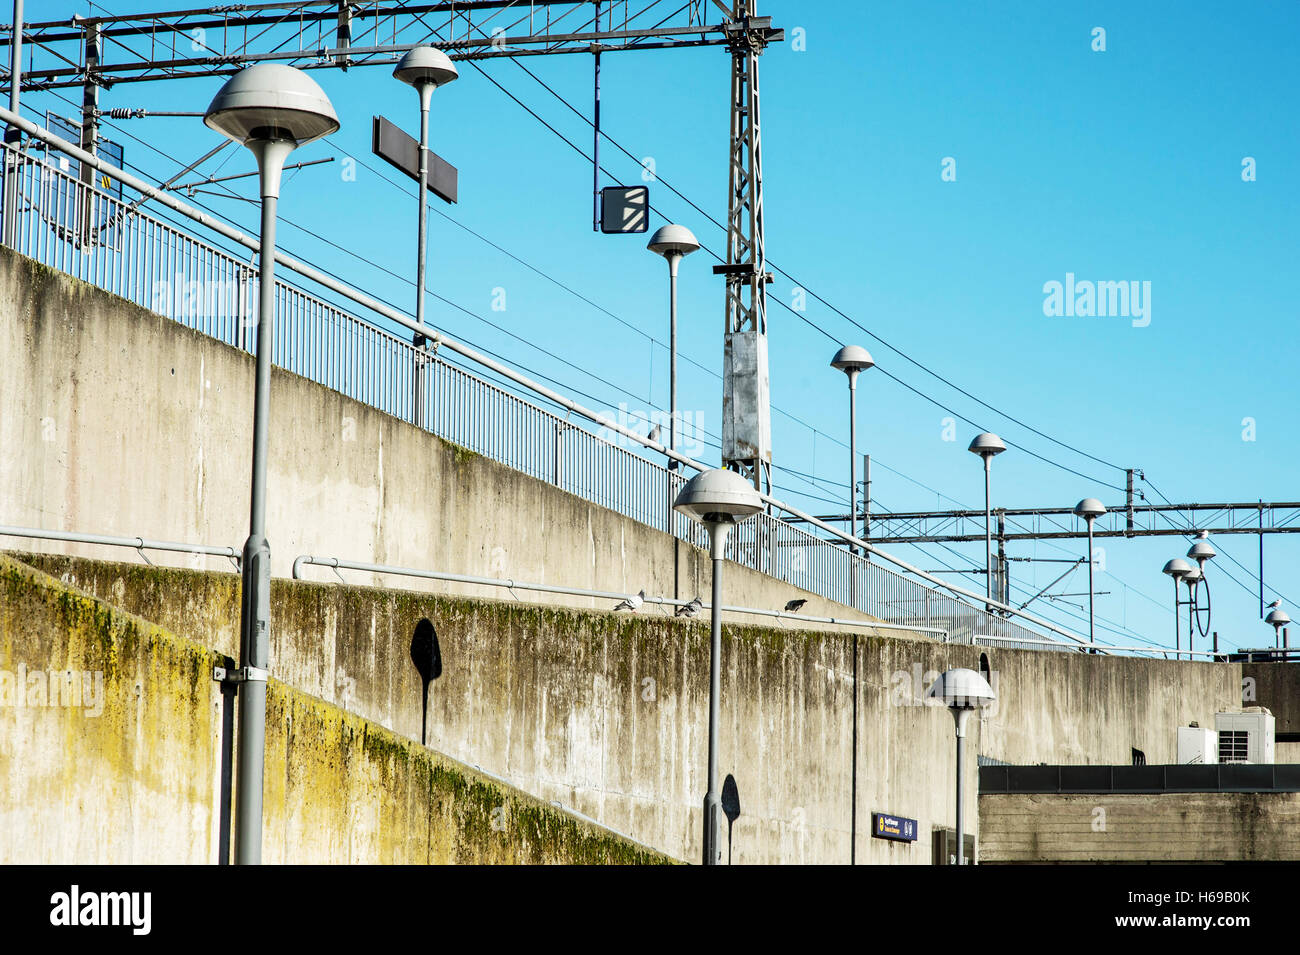 Concrete Access Ramp to Sandnes Norway Railway Station With Street Lighting Stock Photo